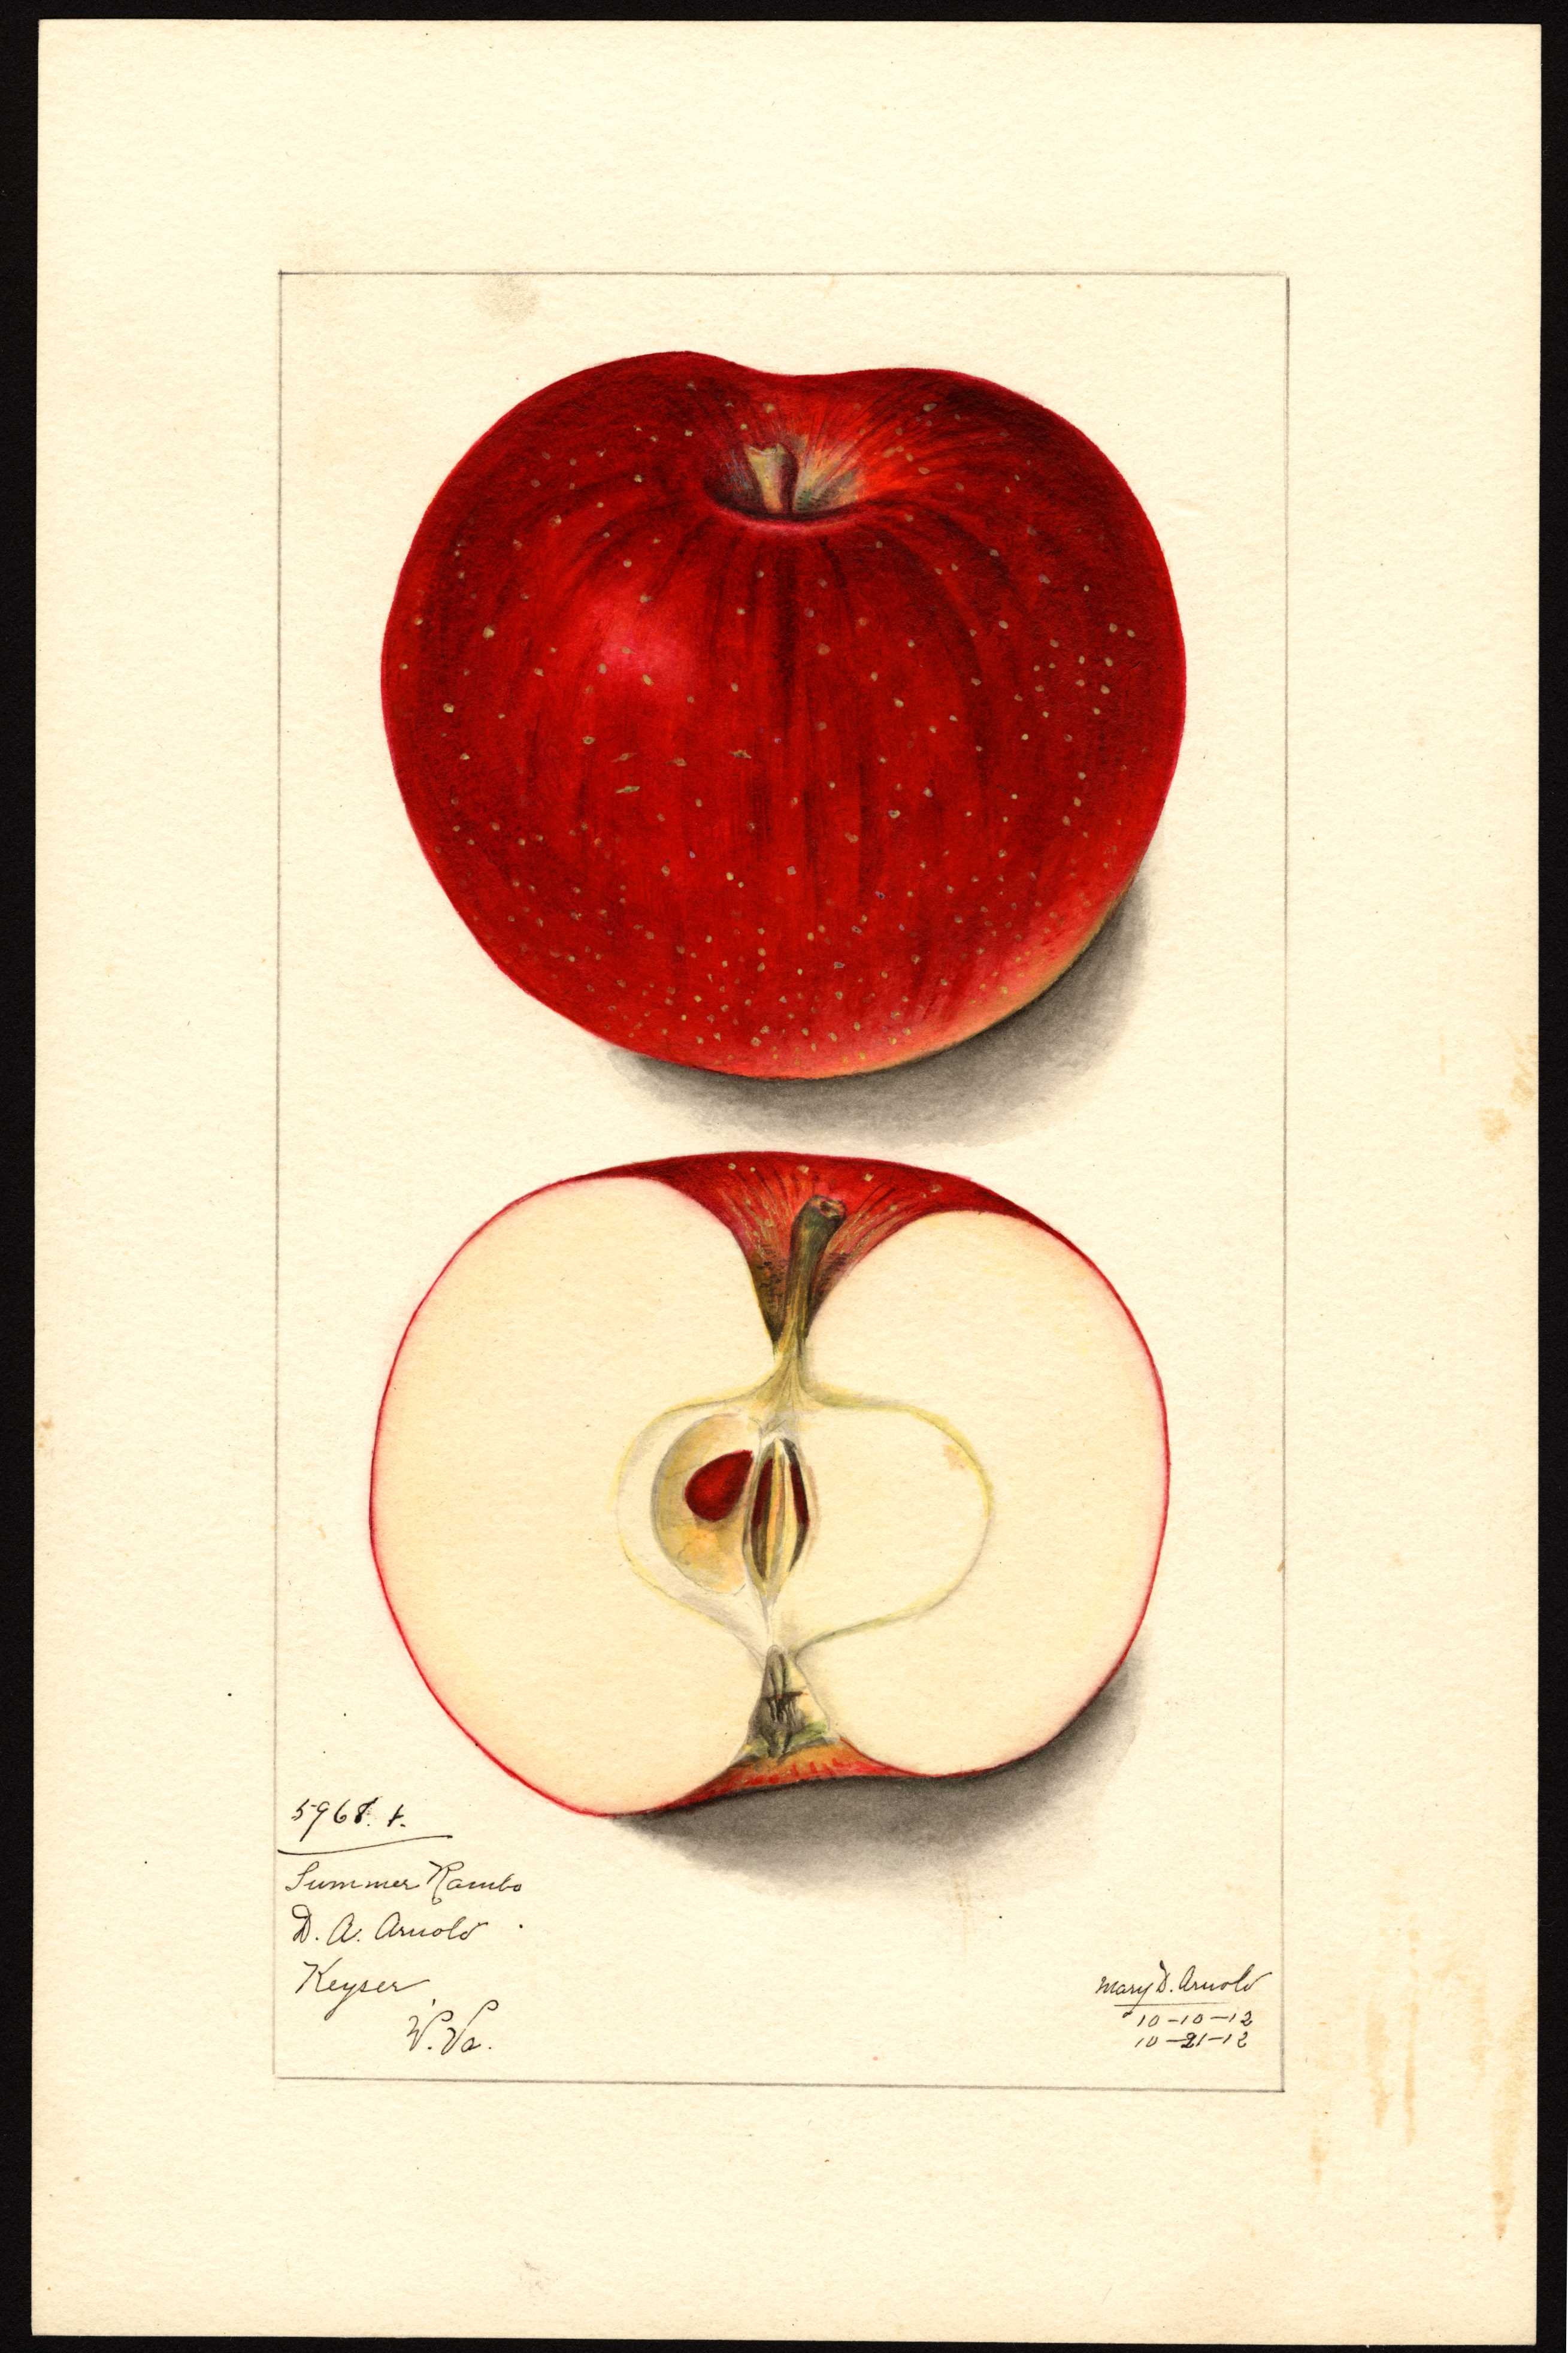 watercolor of a red apple with darker red stripes